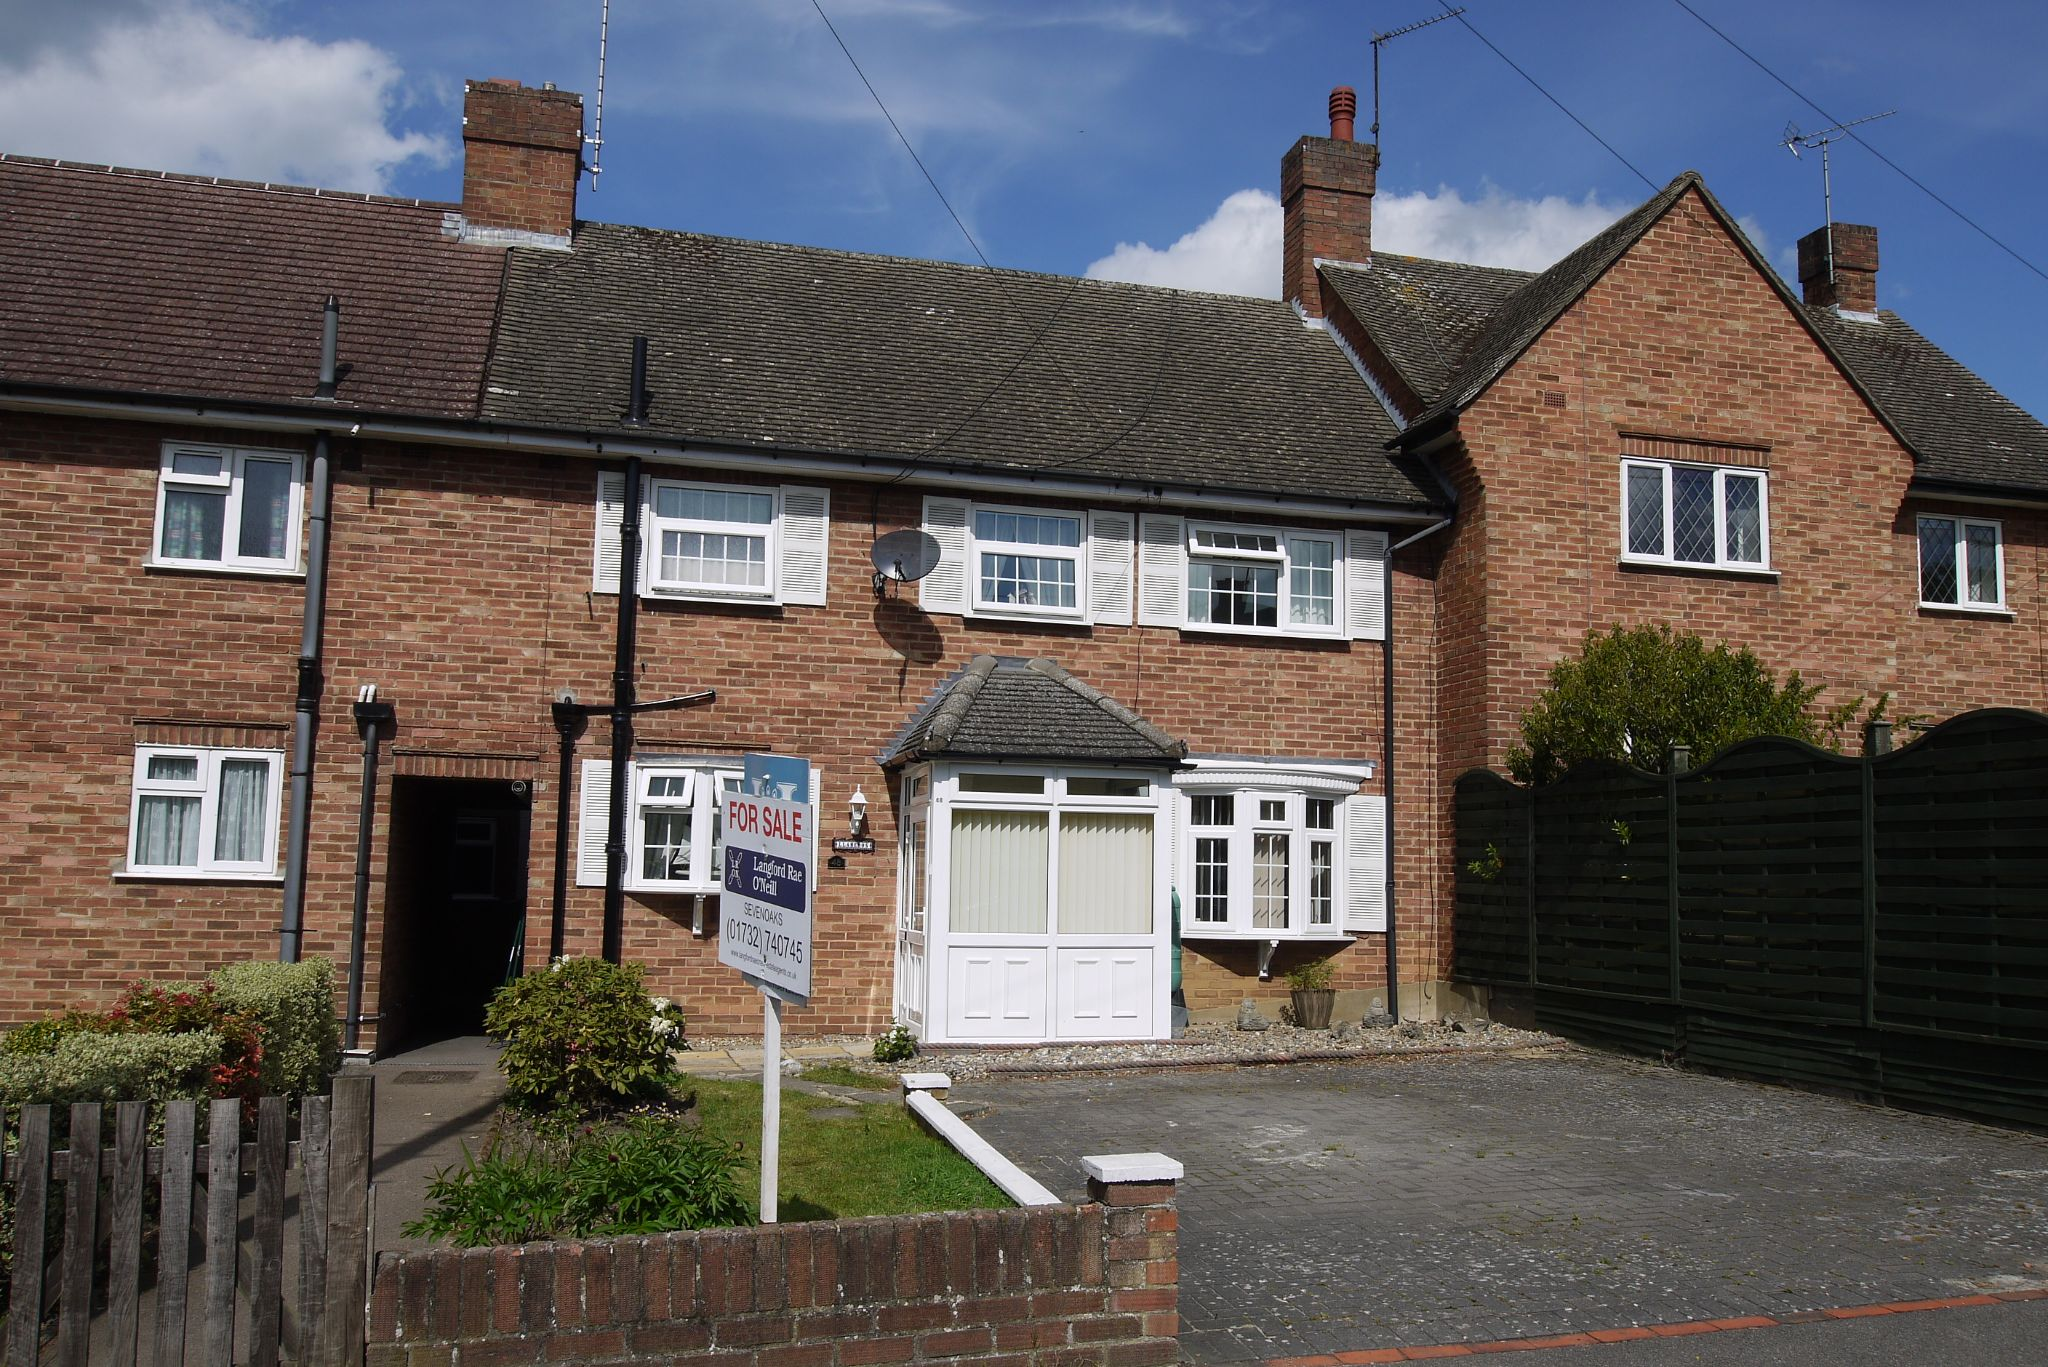 3 bedroom mid terraced house For Sale in Sevenoaks - Photograph 1